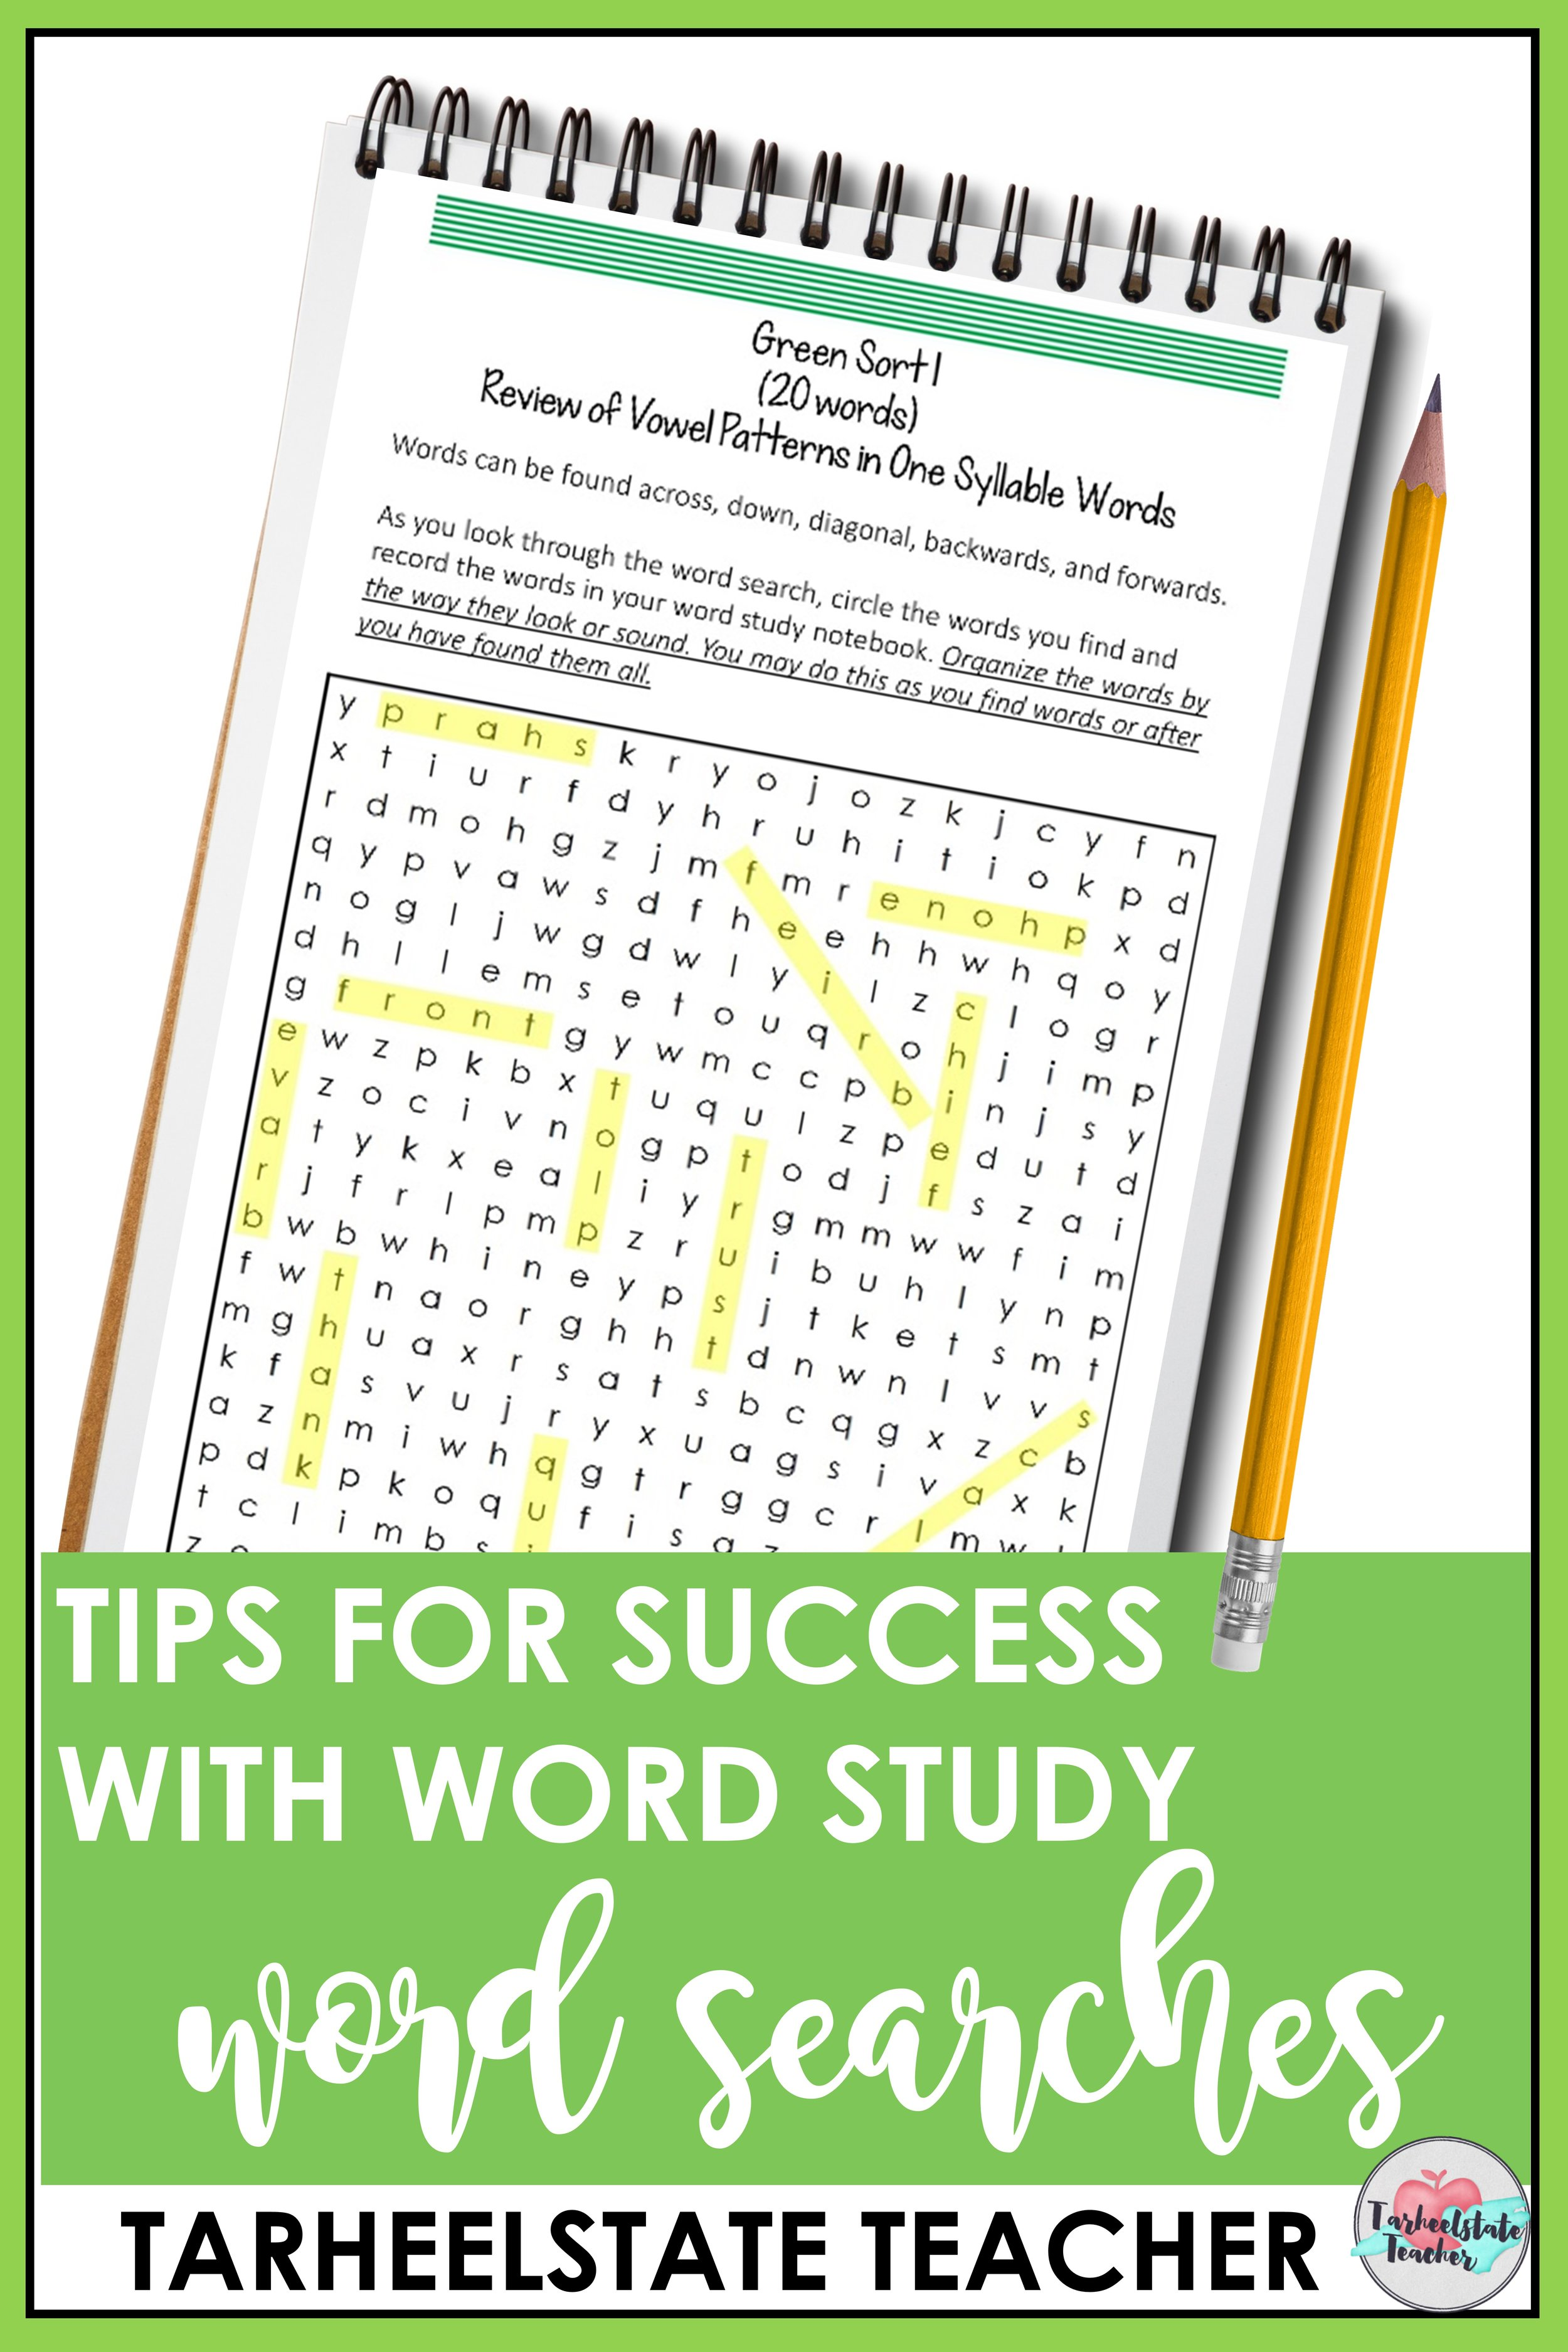 tips for success with word searches word study.jpg